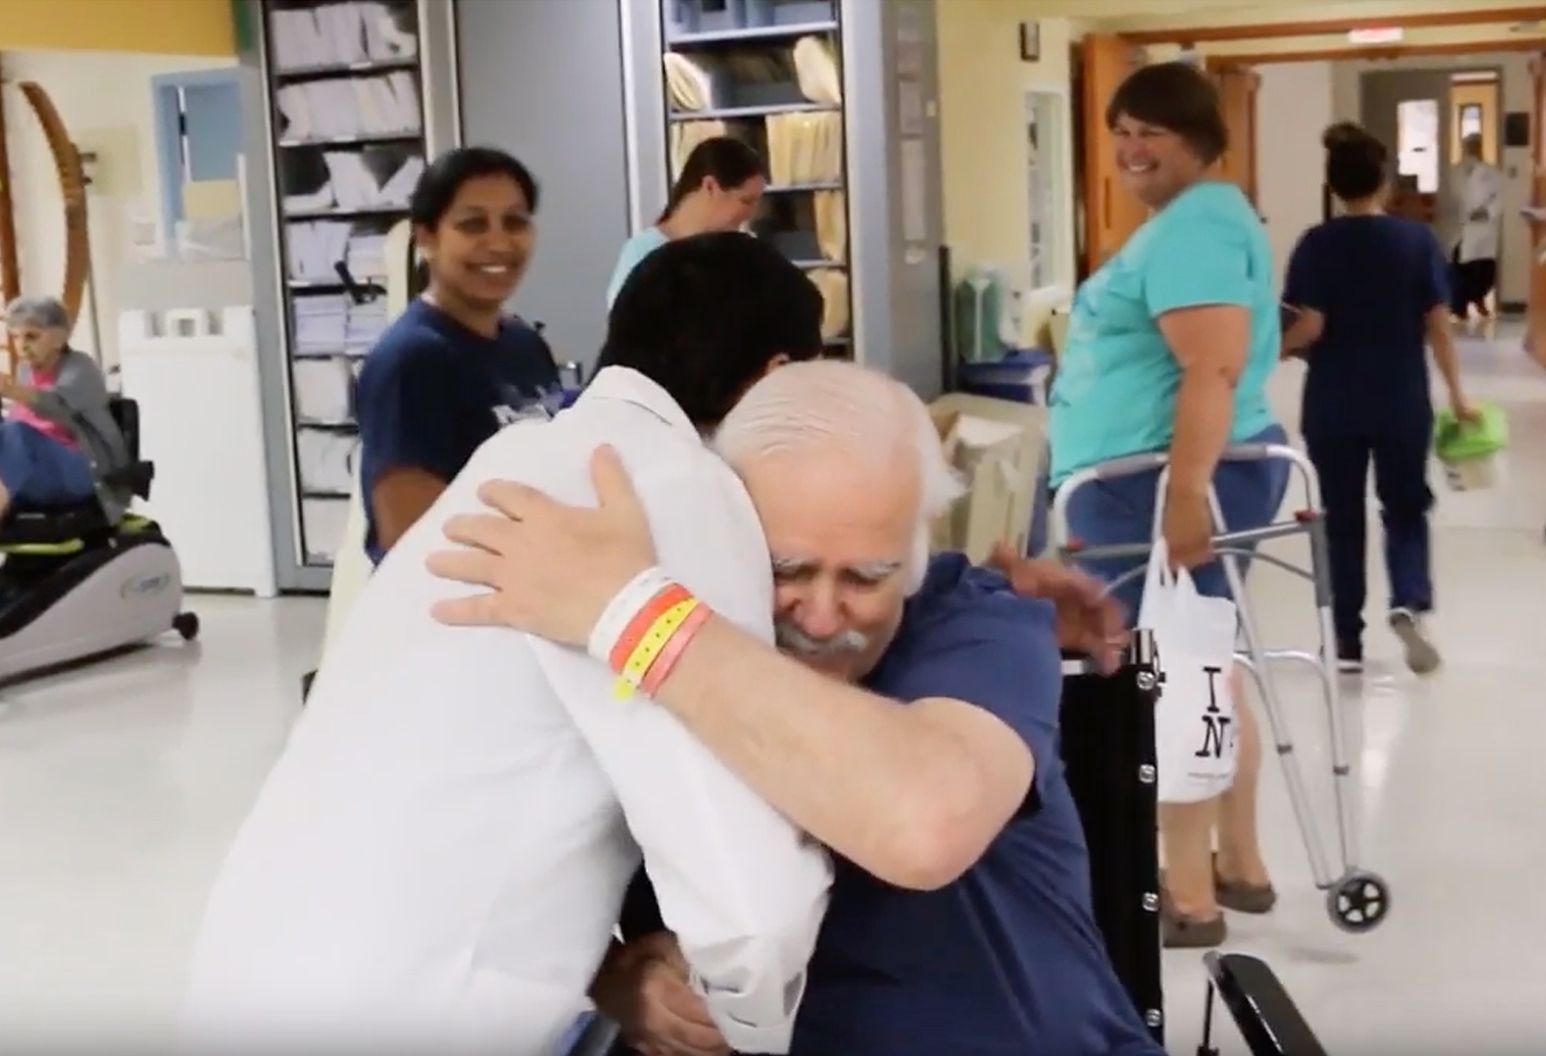 Male in white lab coat hugs older man with gray hair and blue shirt in wheelchair